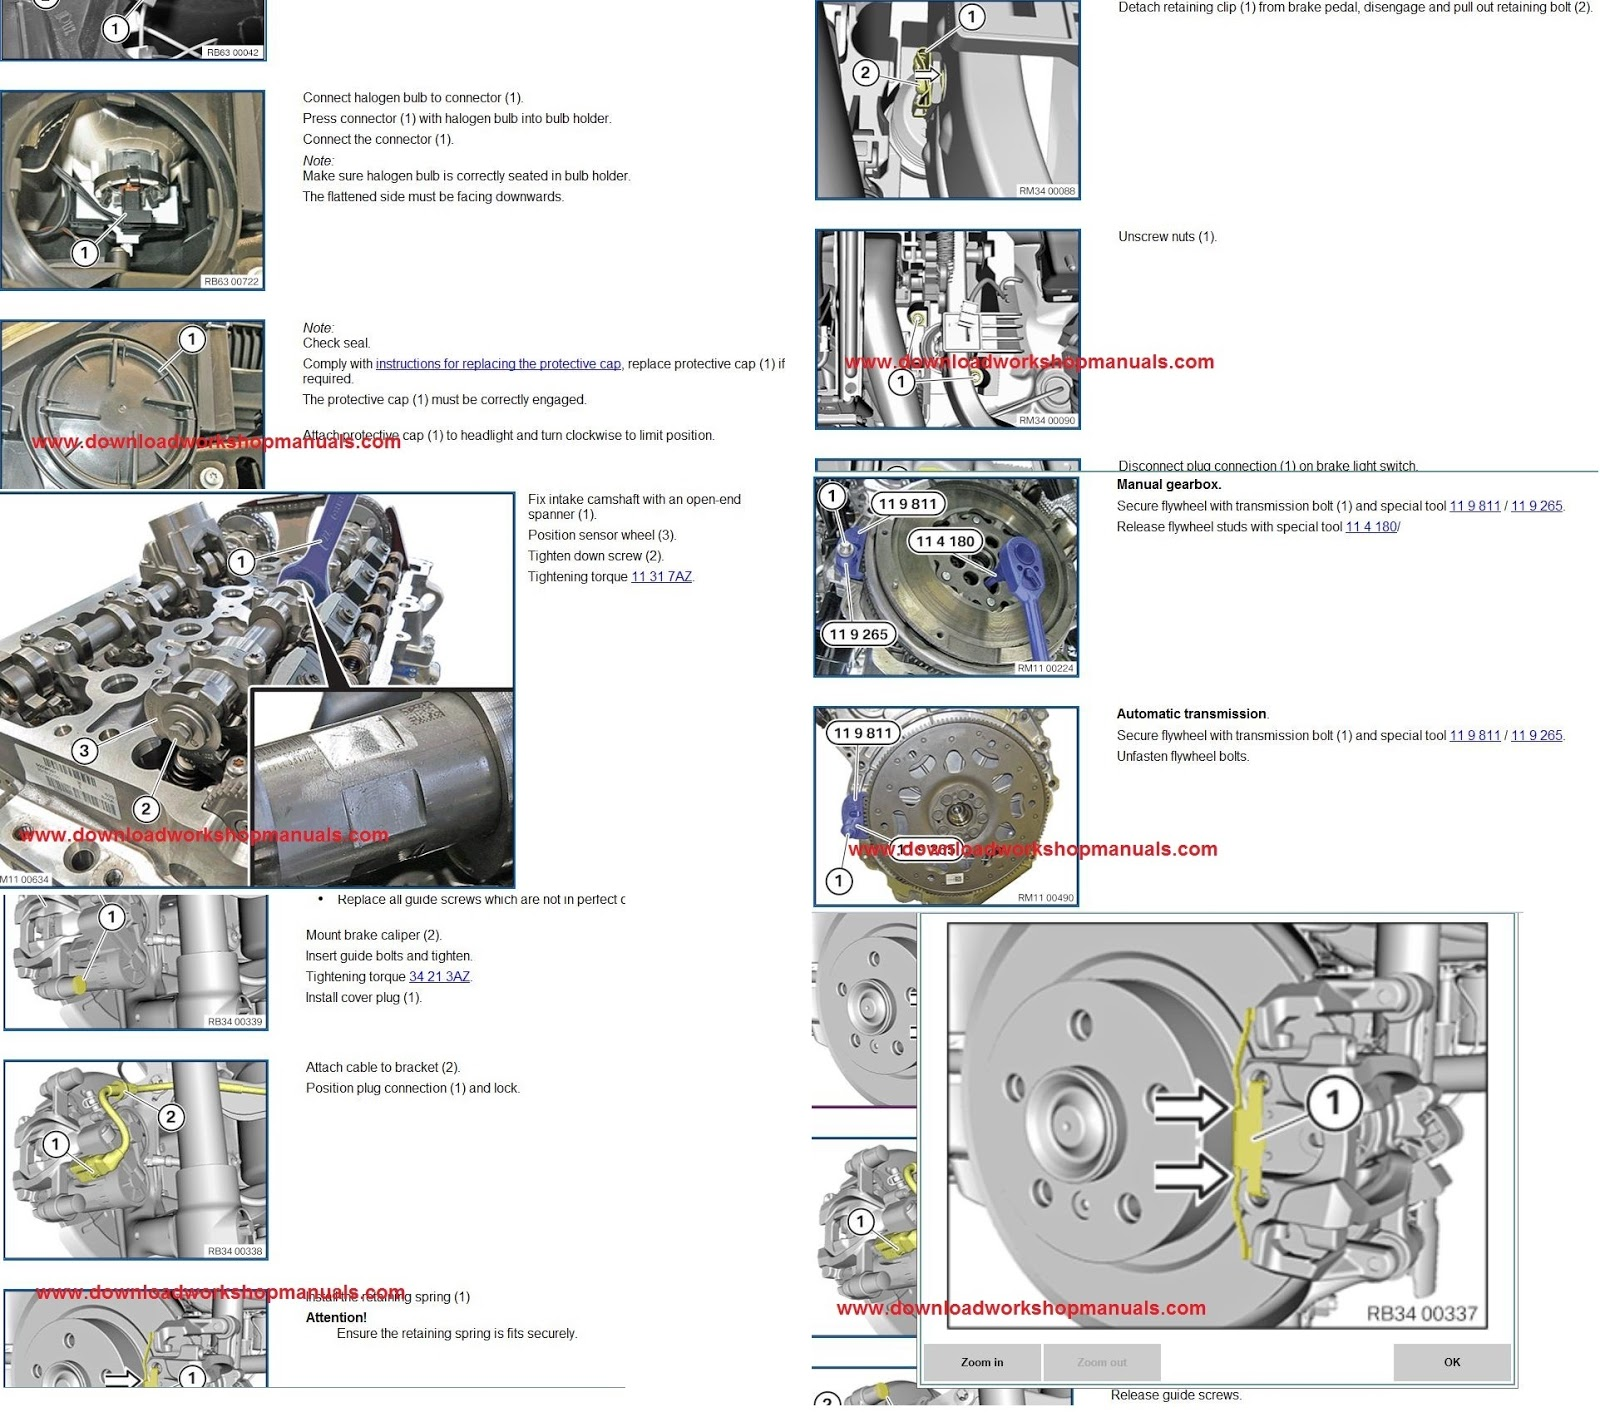 TIS Technical Information System Workshop Repair Manual BMW and MINI